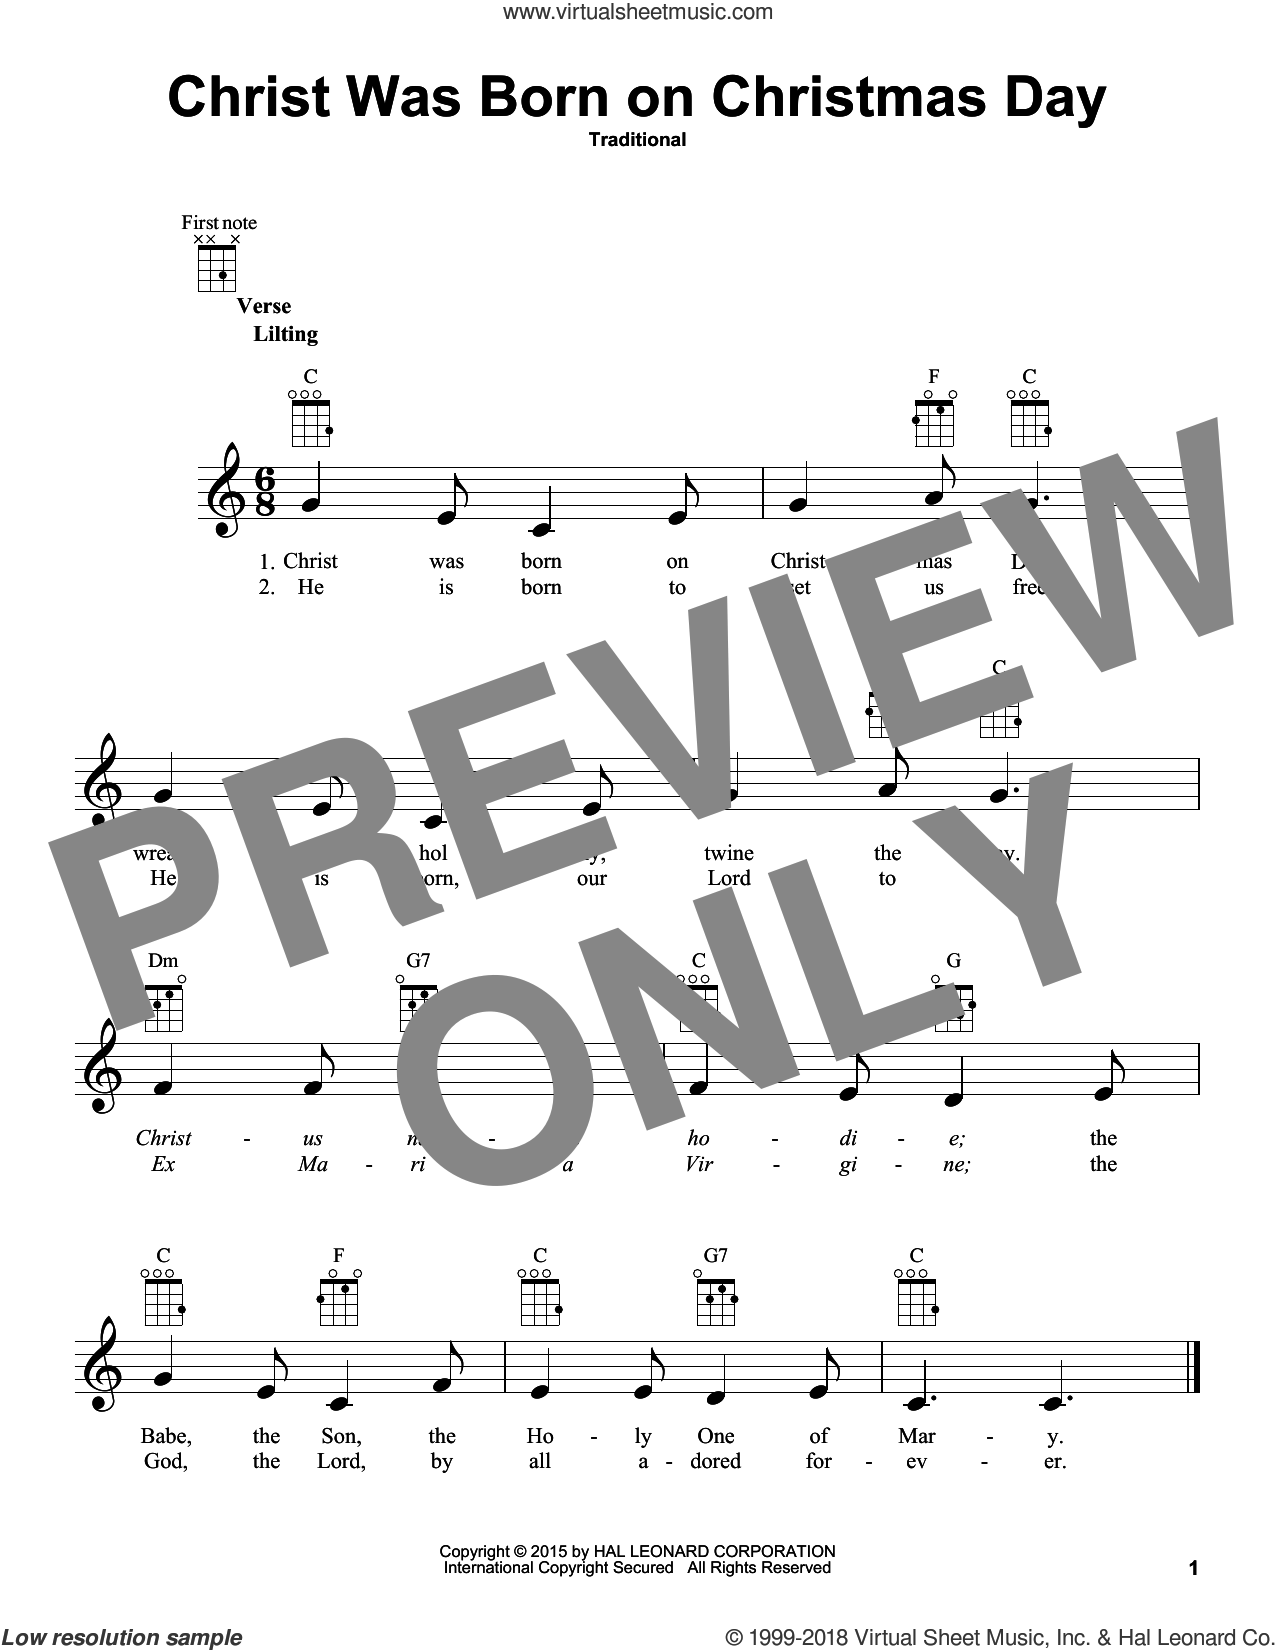 Christ Was Born On Christmas Day sheet music for ukulele, intermediate skill level